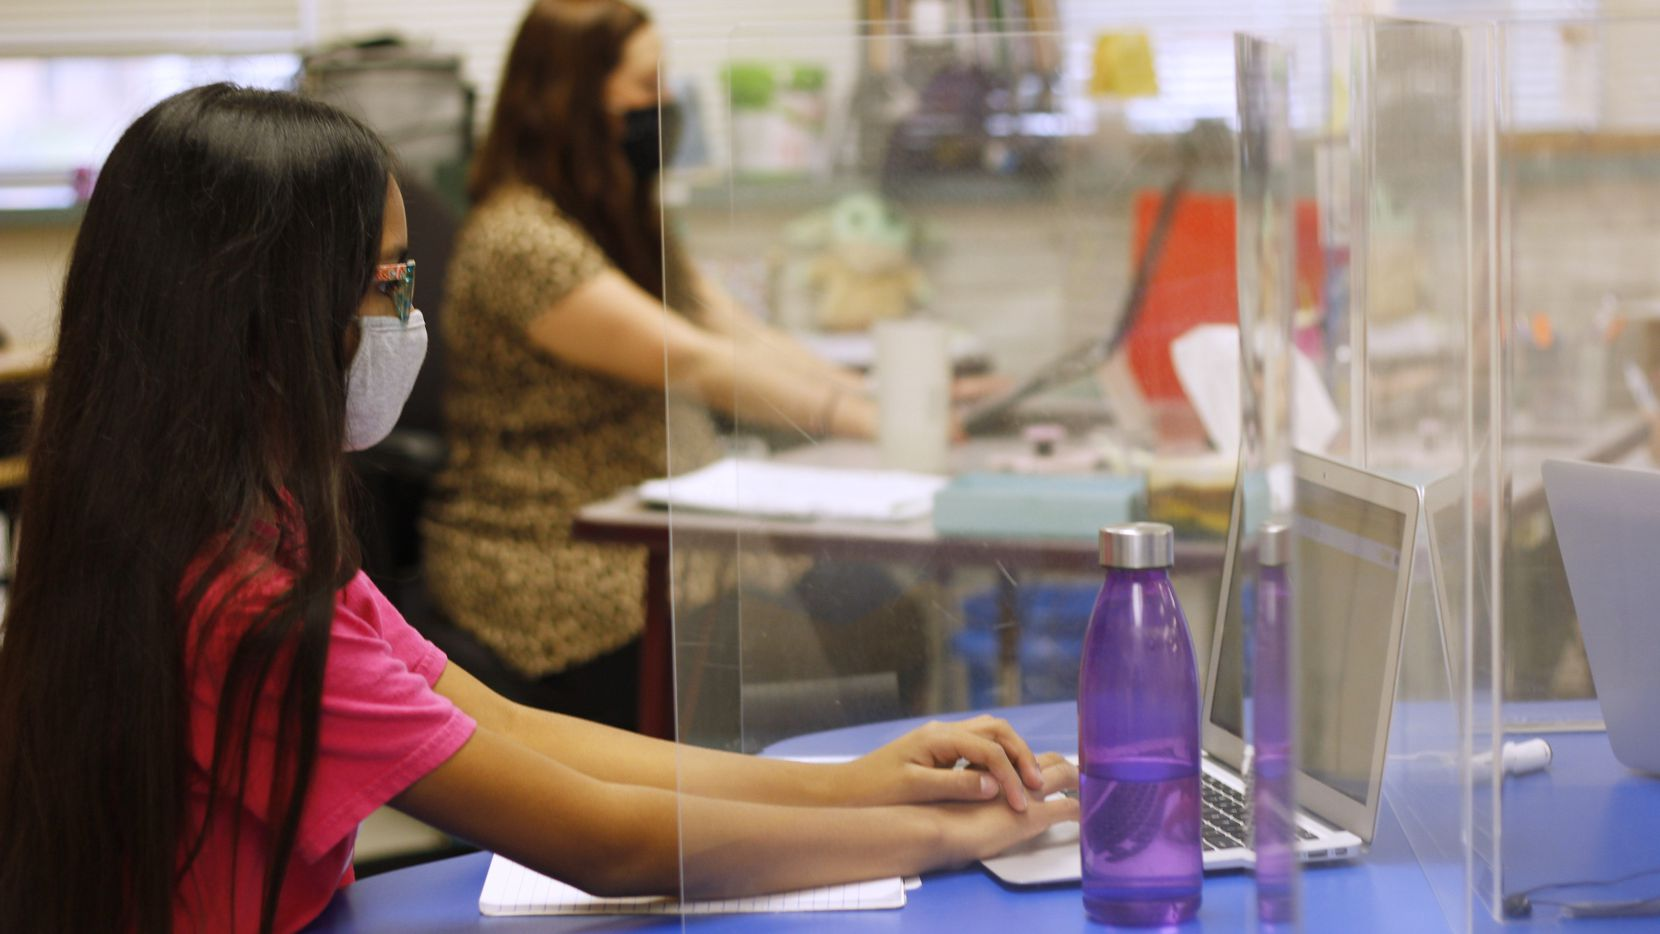 One of the challenges with creating a yearbook during the pandemic was the lack of photos available, Diaz said. But even the shots of masks and Plexiglass  of students in Garland ISD's Beaver Technology Center will be worth remembering some day, she said. (Courtesy Tevis Diaz)